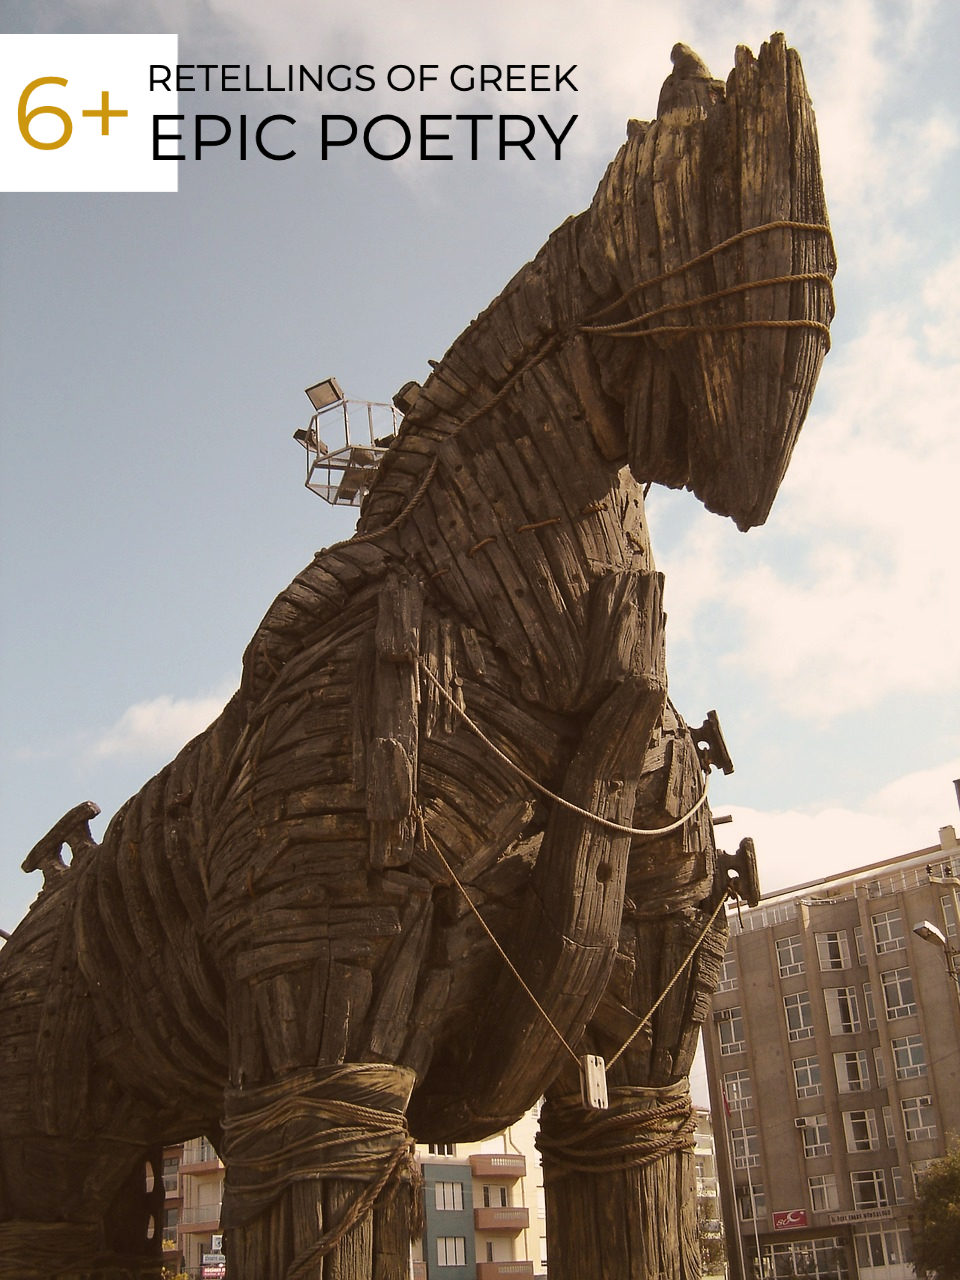 Graphic with text 8 Retellings of Greek Epic Poetry and photo of the Trojan horse